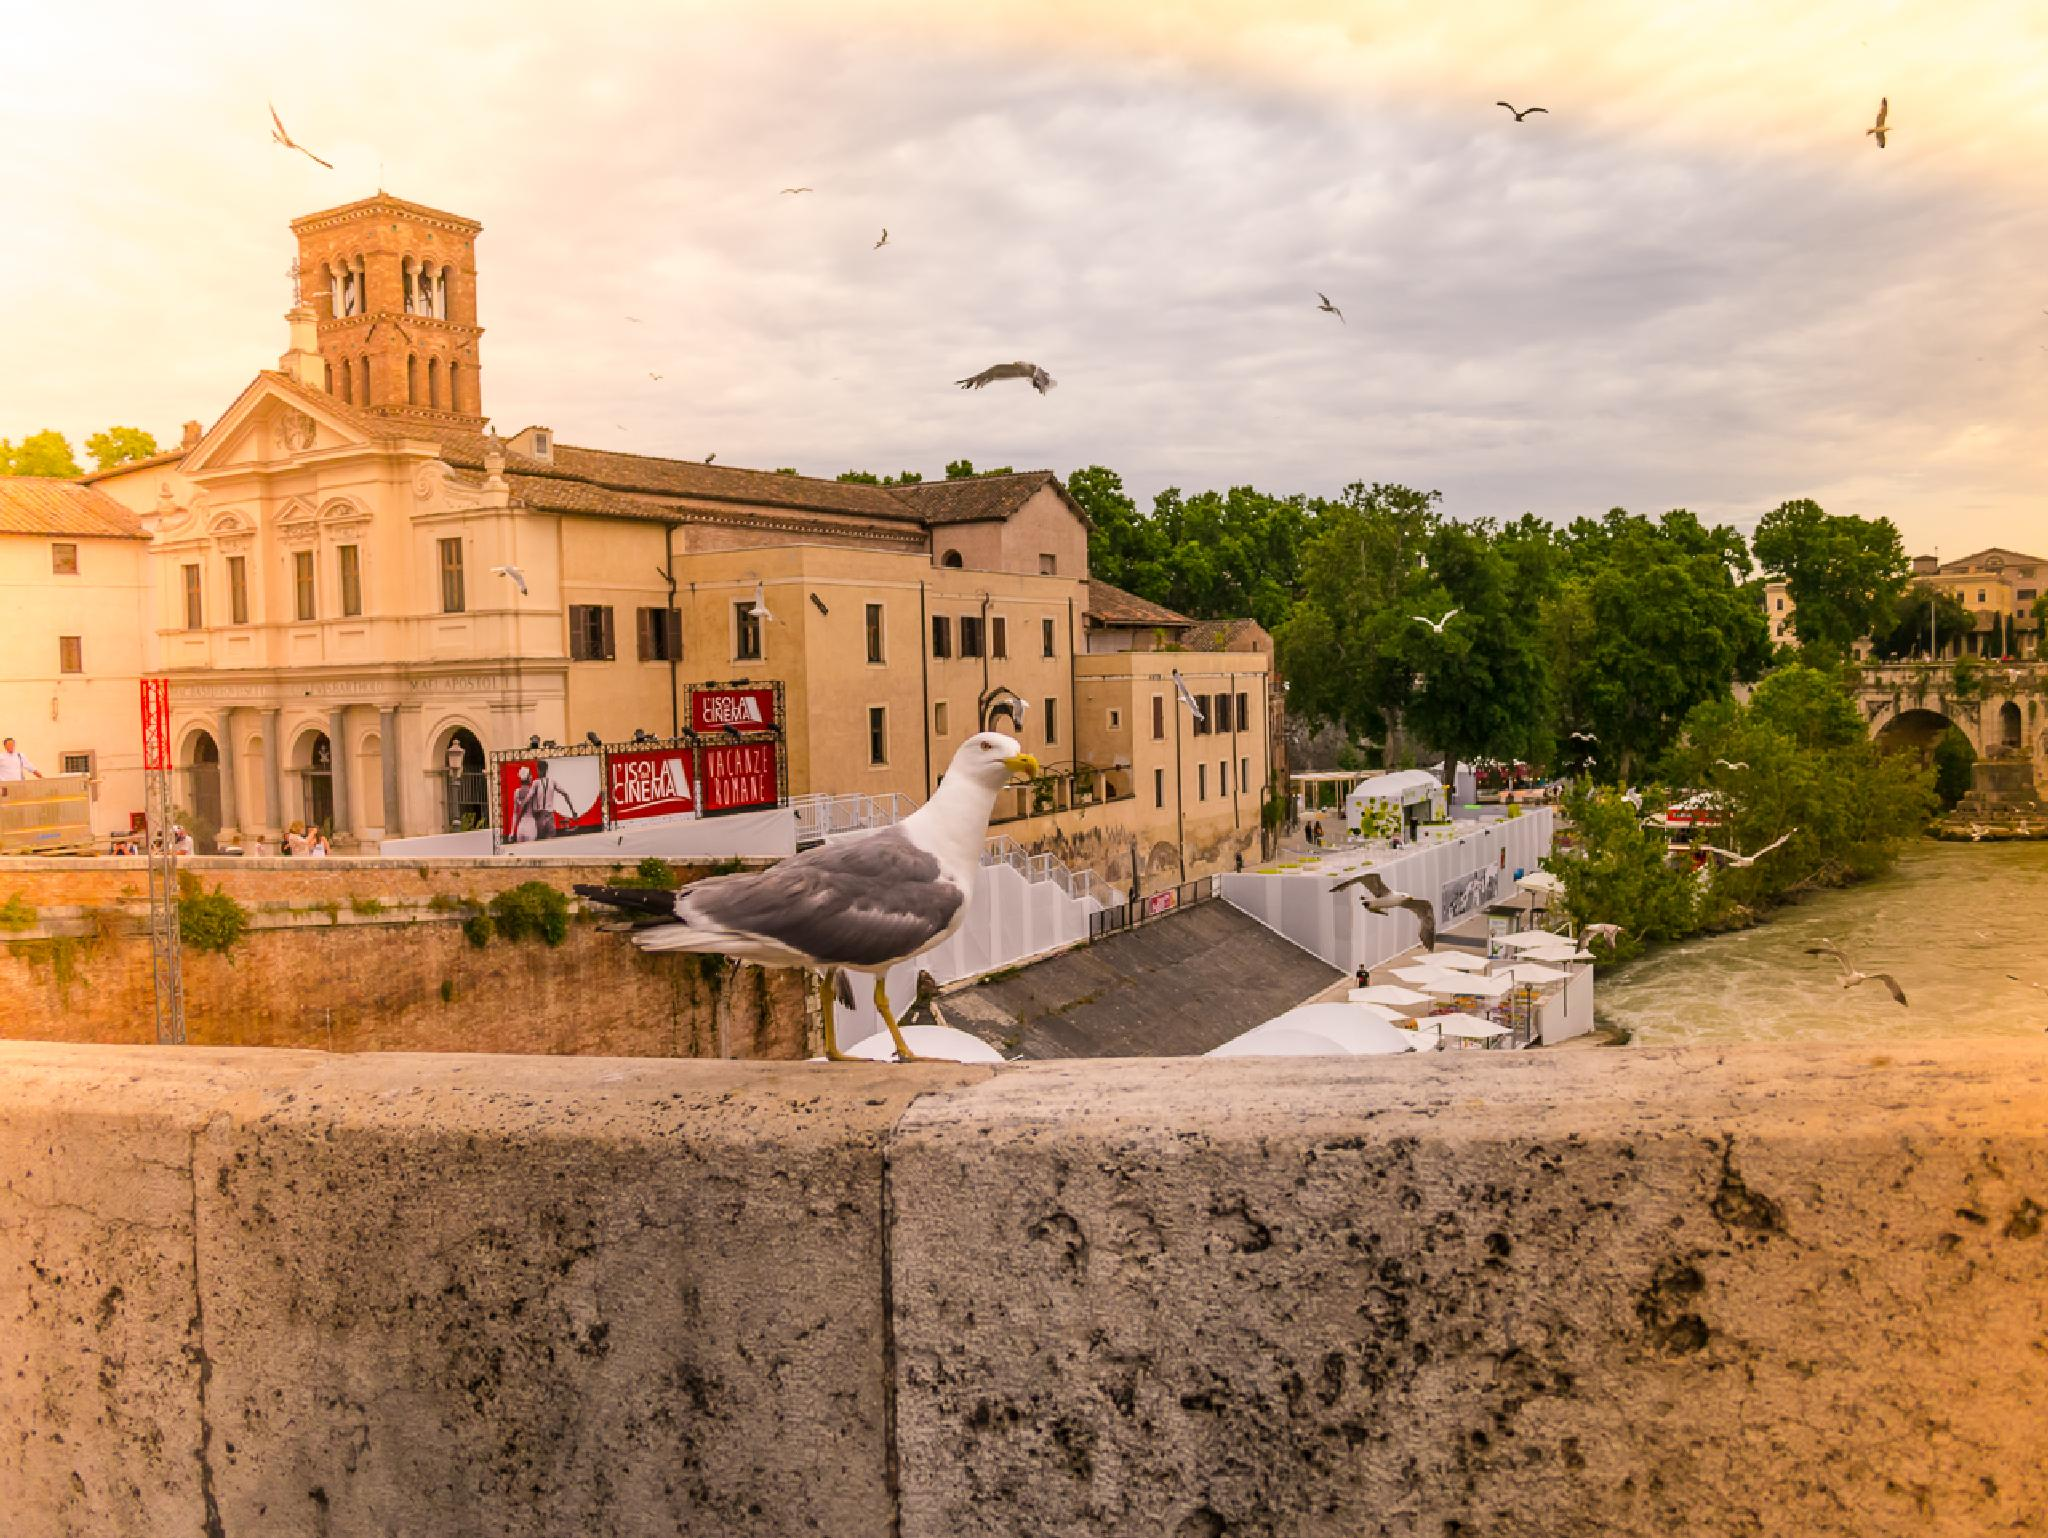 the bird and the curch by Maurizio Fissi